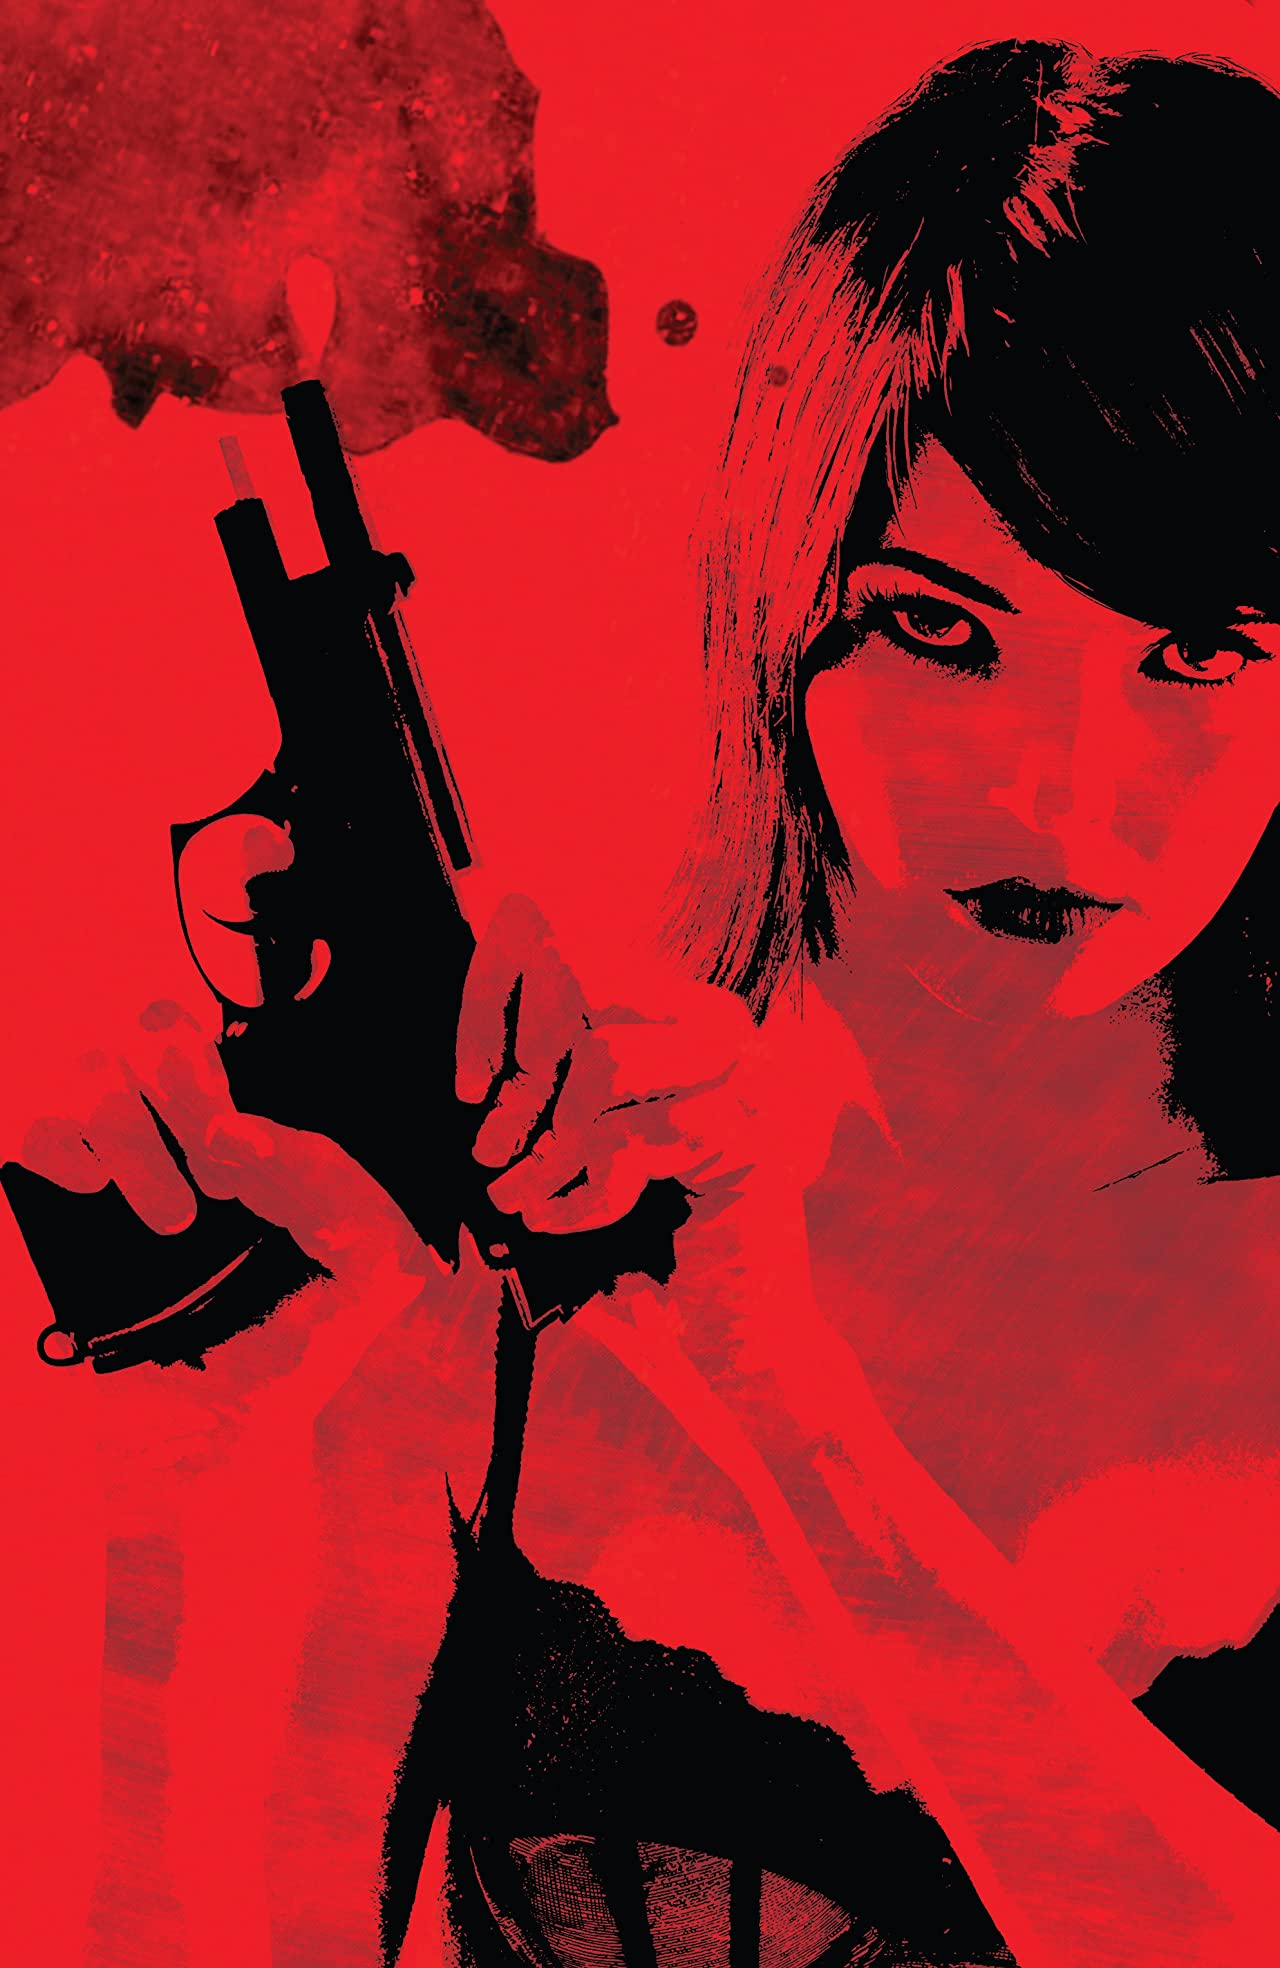 Garth Ennis' Jennifer Blood Vol. 2